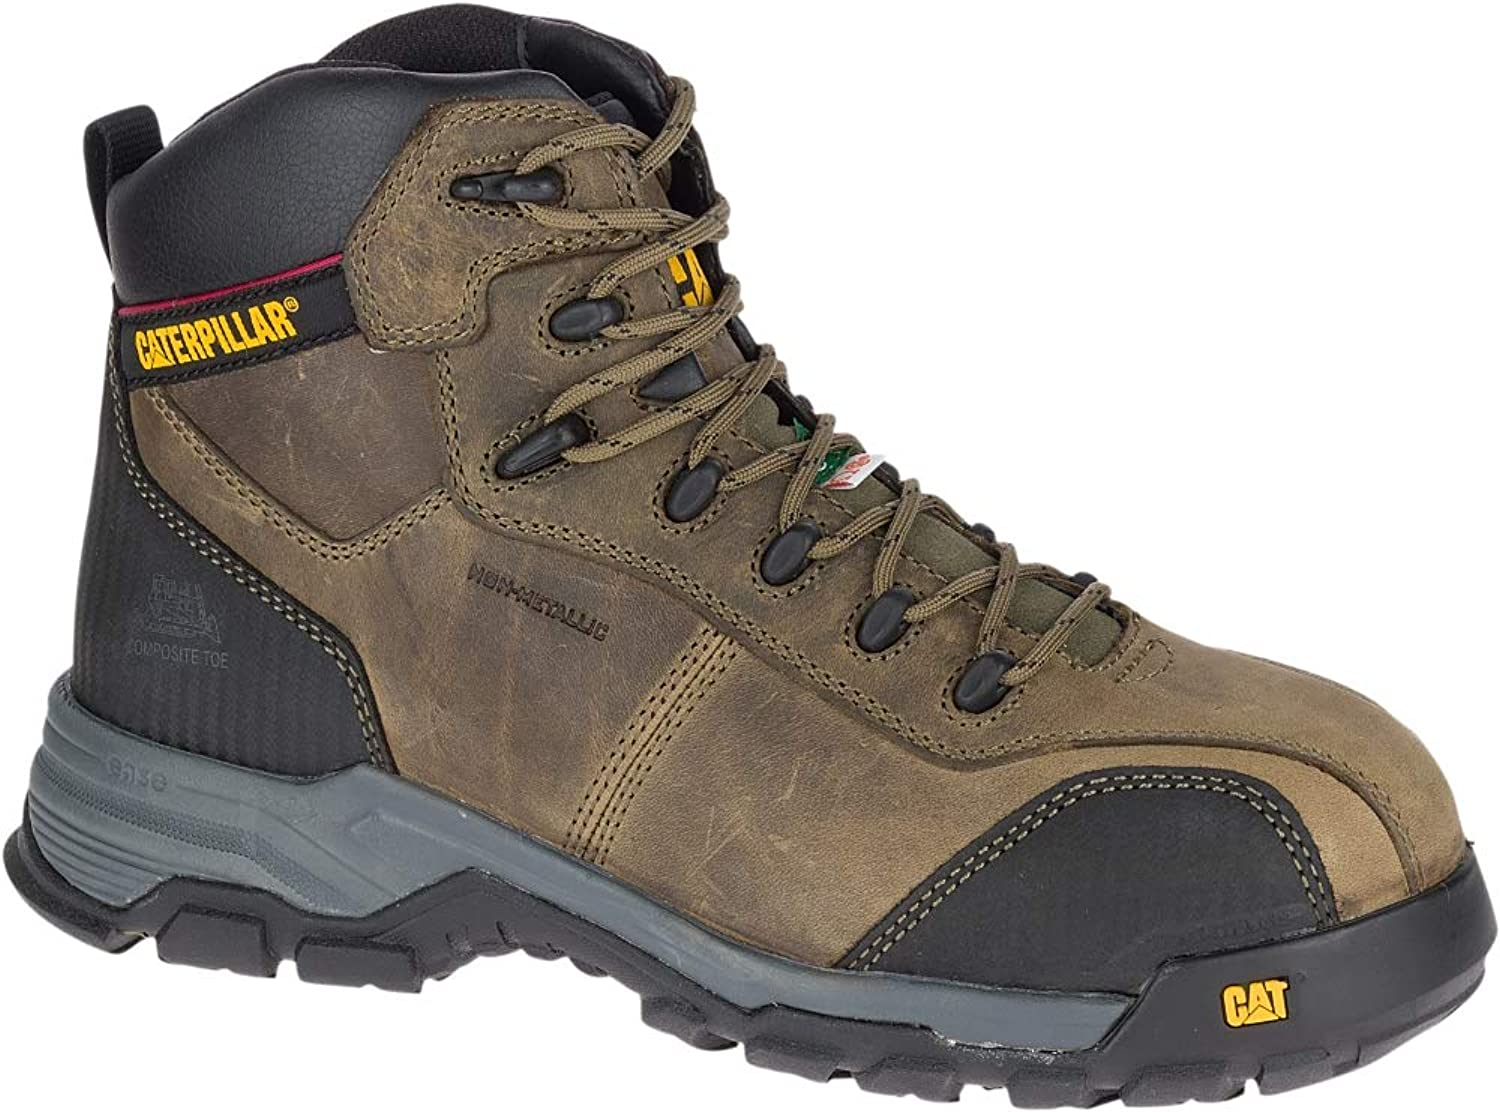 Caterpillar Validate NanoToe CSA Work Boot